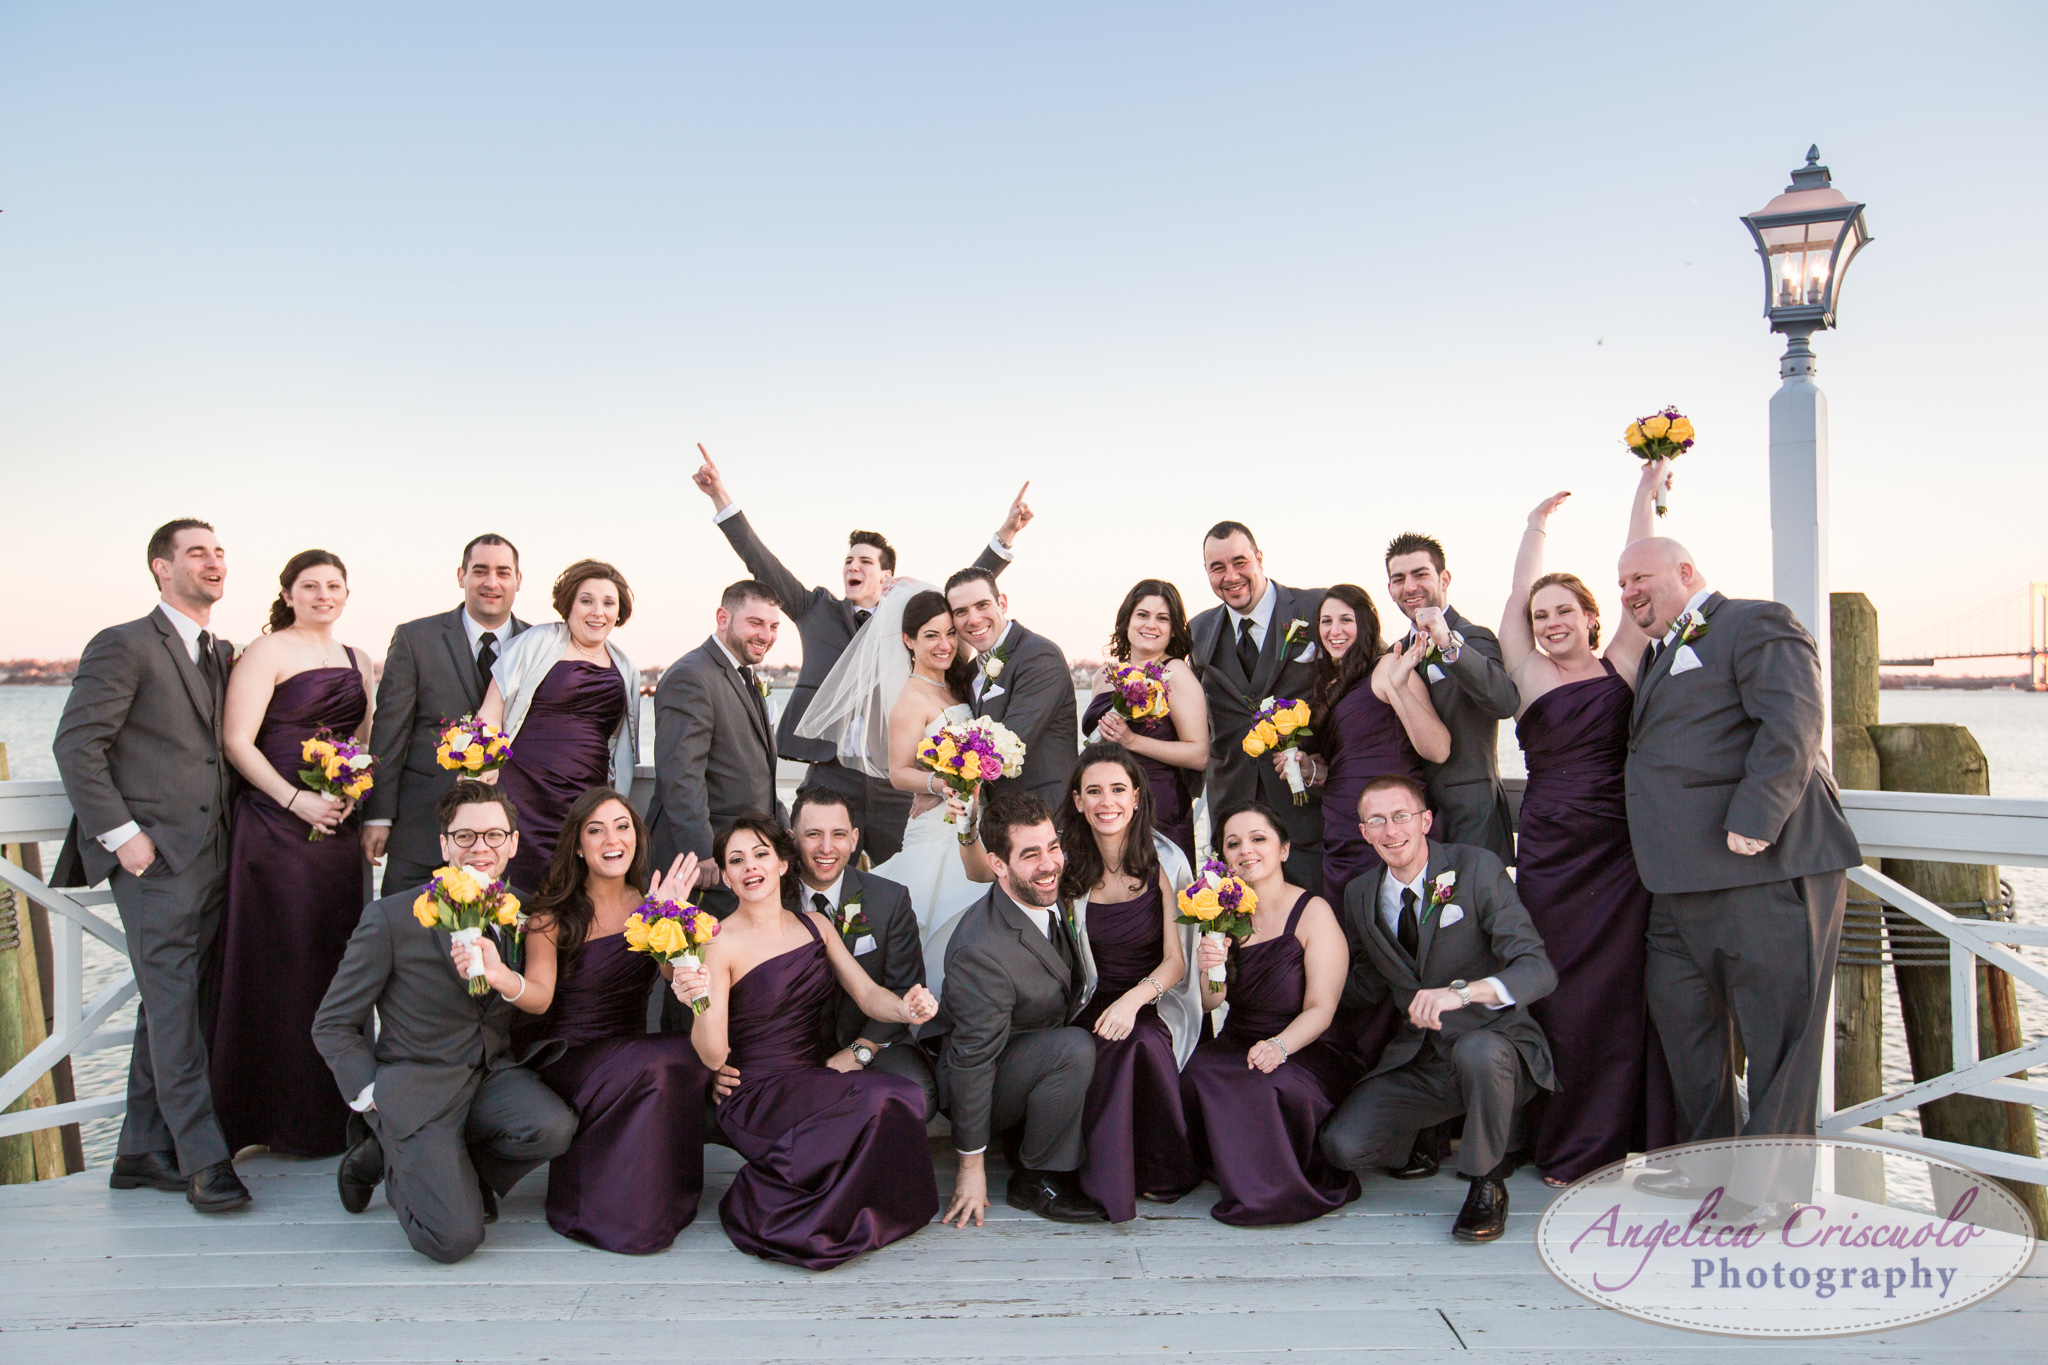 fun bridal party photos New York Wedding Photographer bronx queens LIC